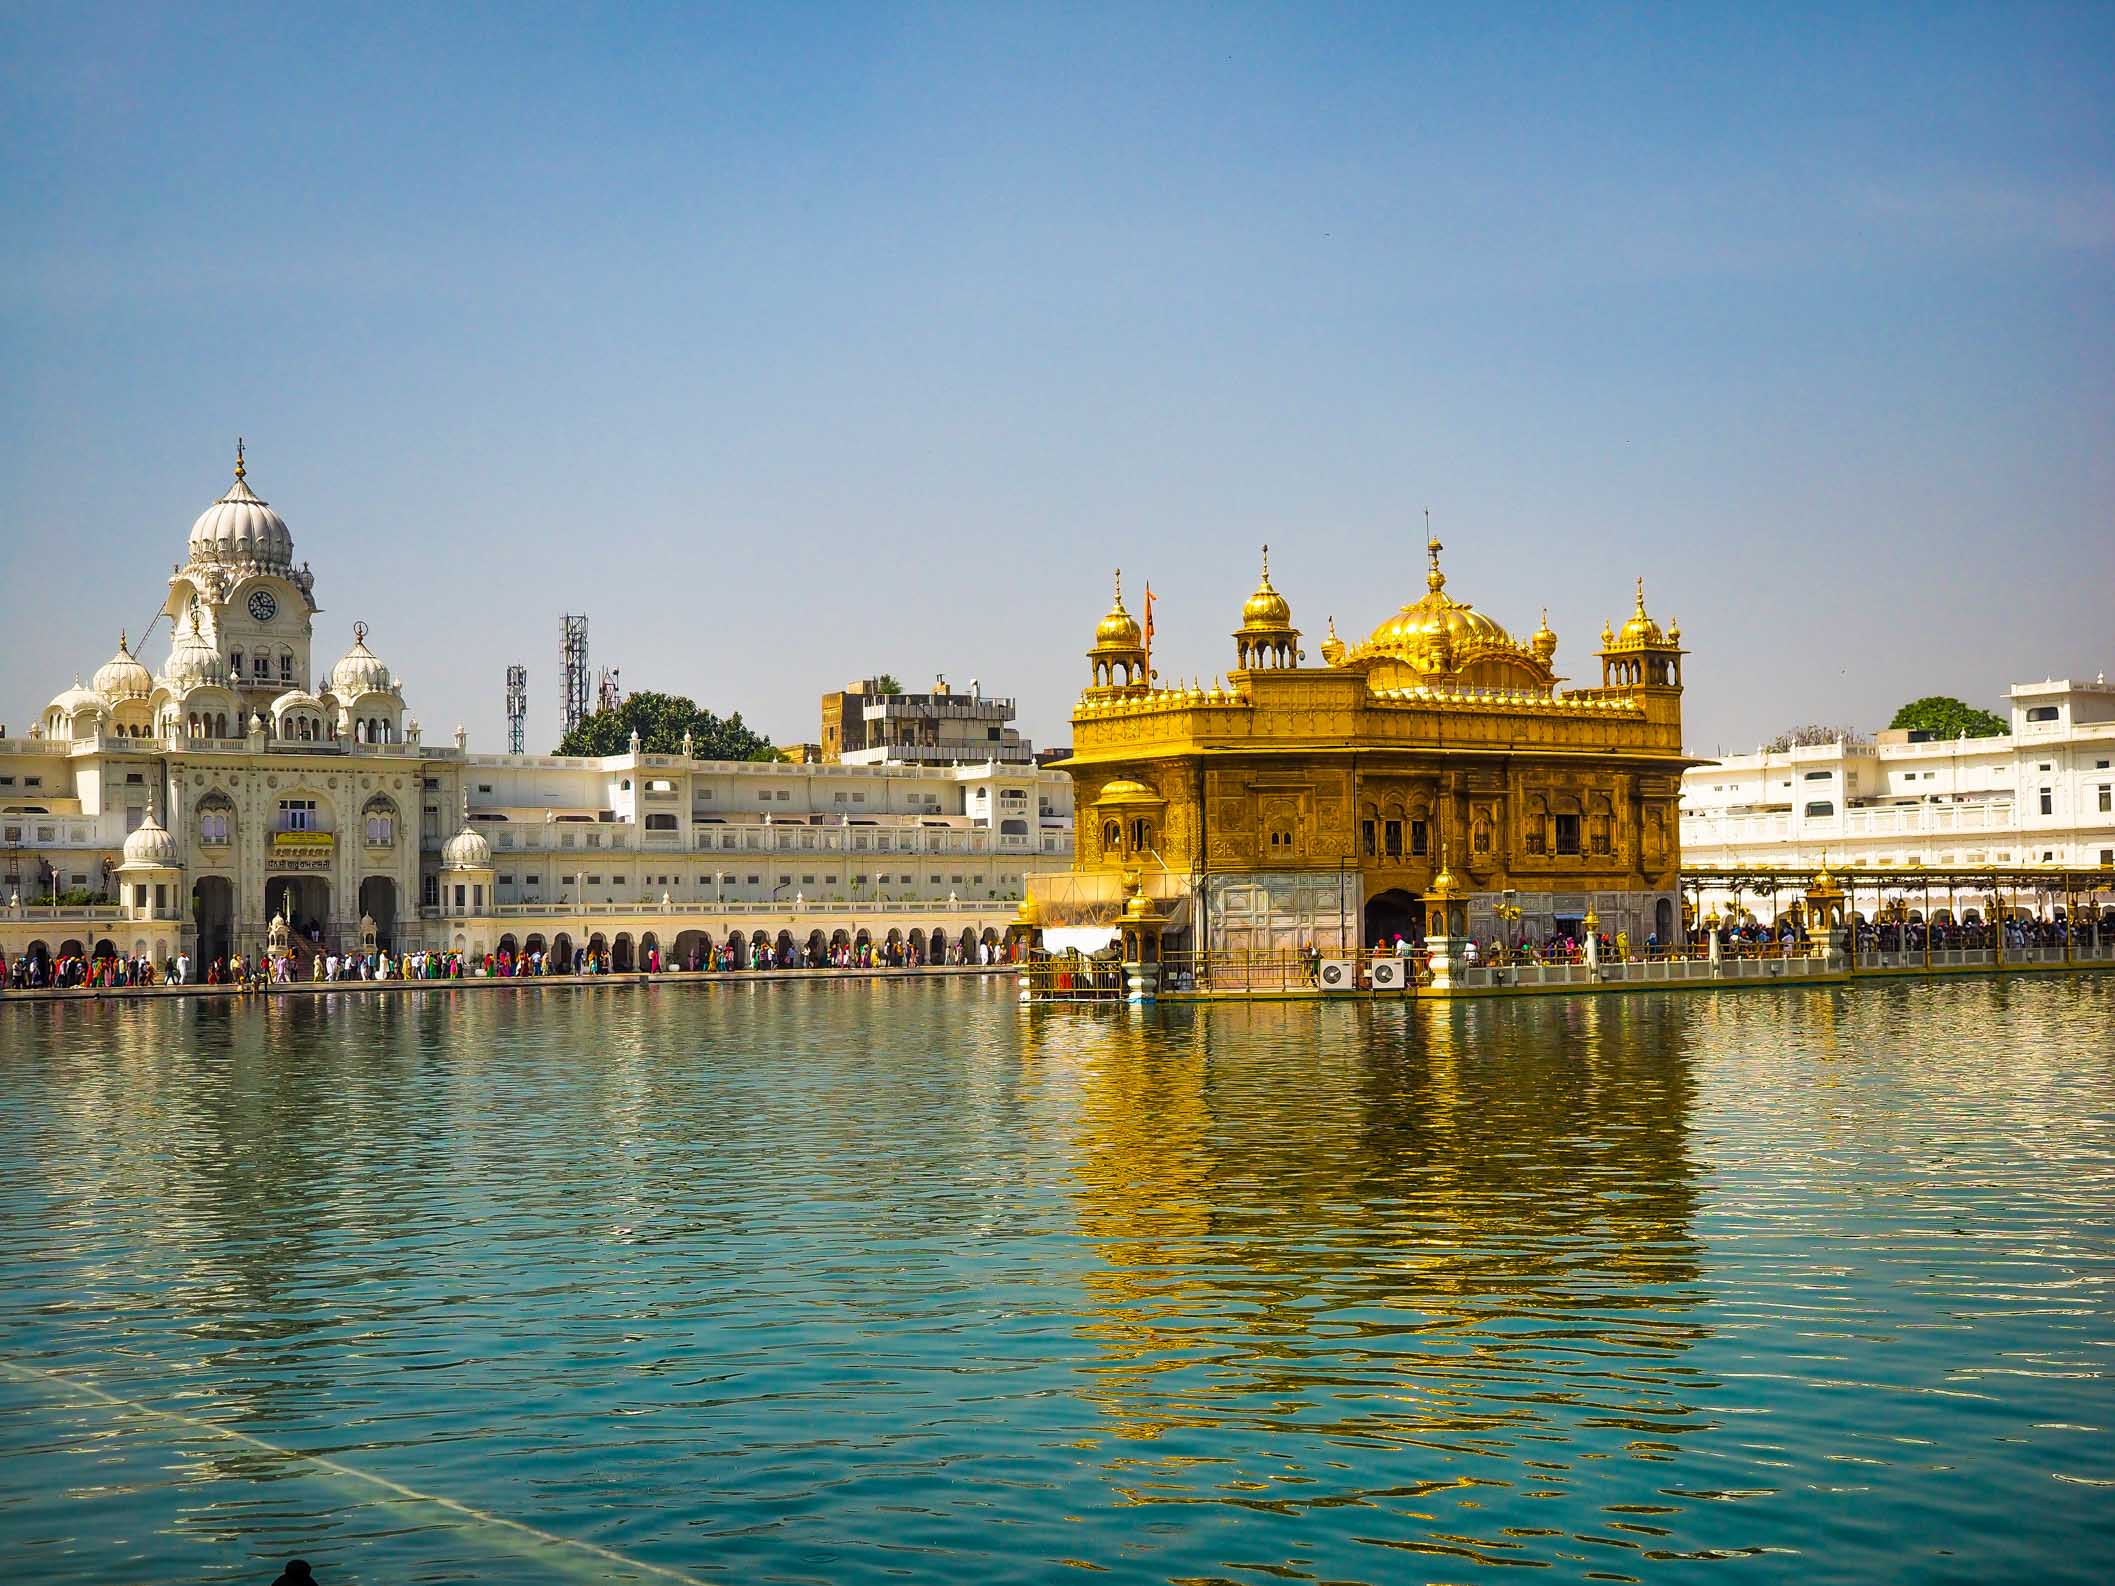 The Golden Temple of Amritsar india